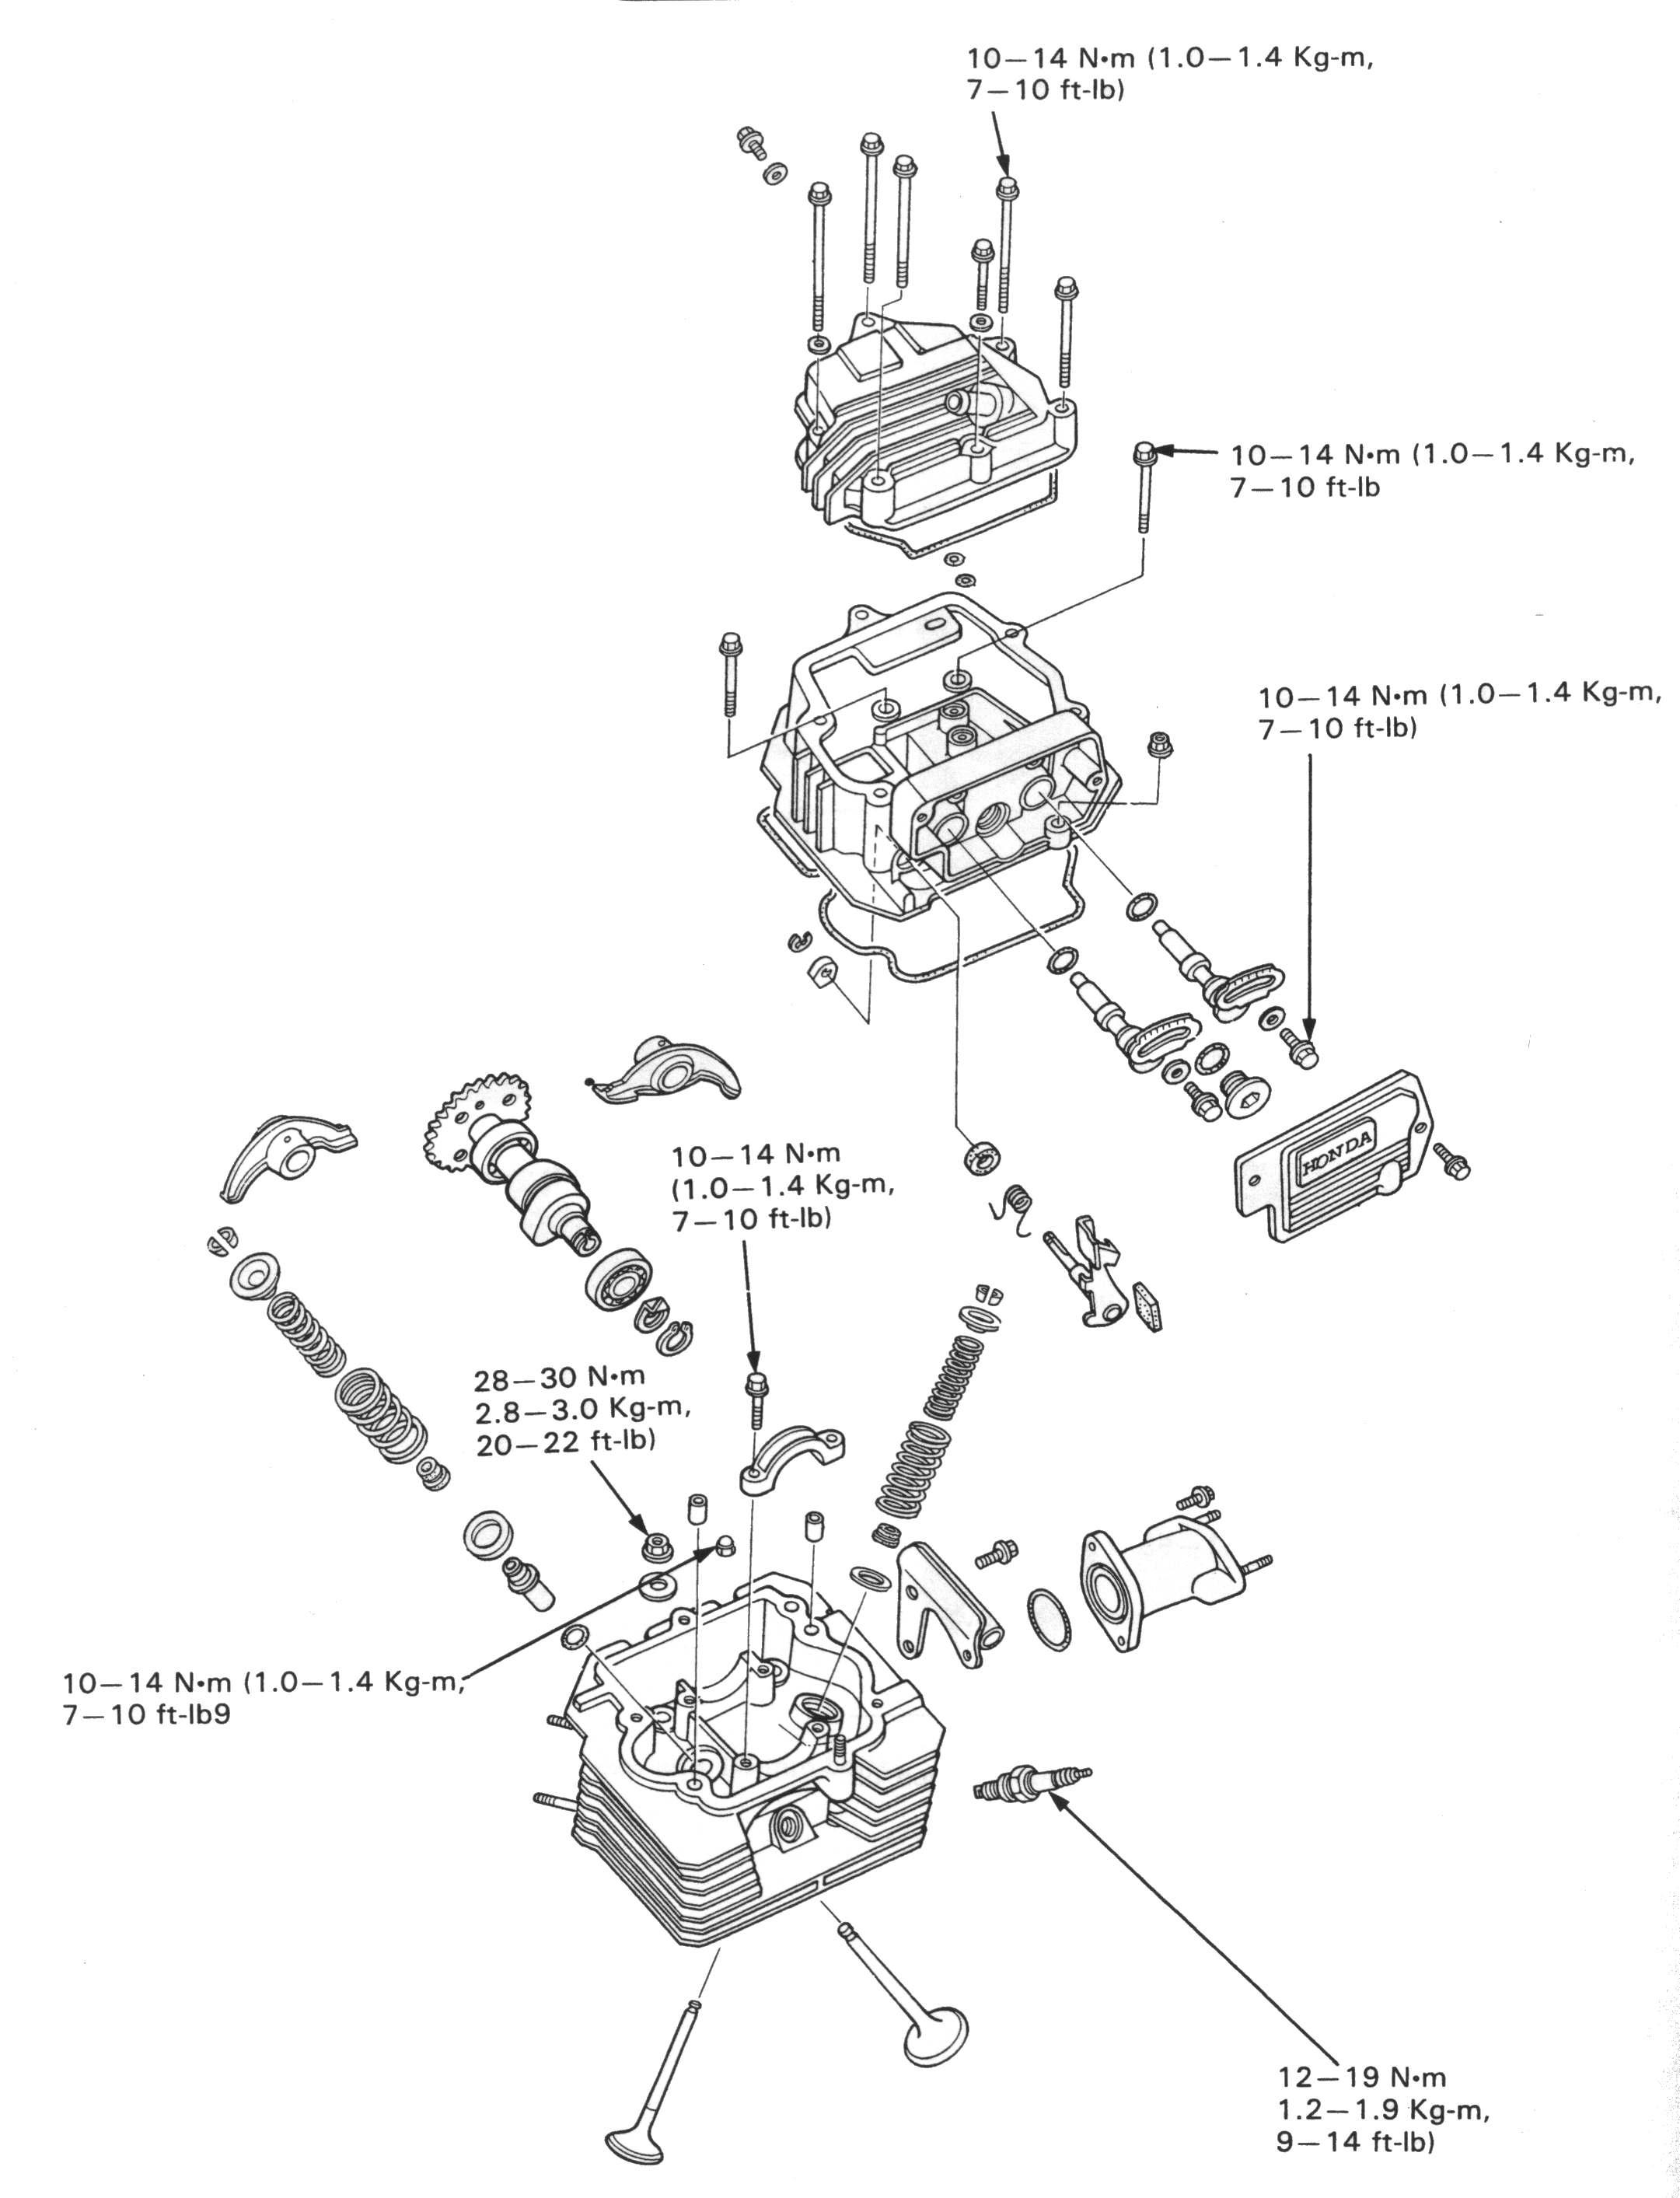 Honda Wave 125 Stator Wiring Diagram